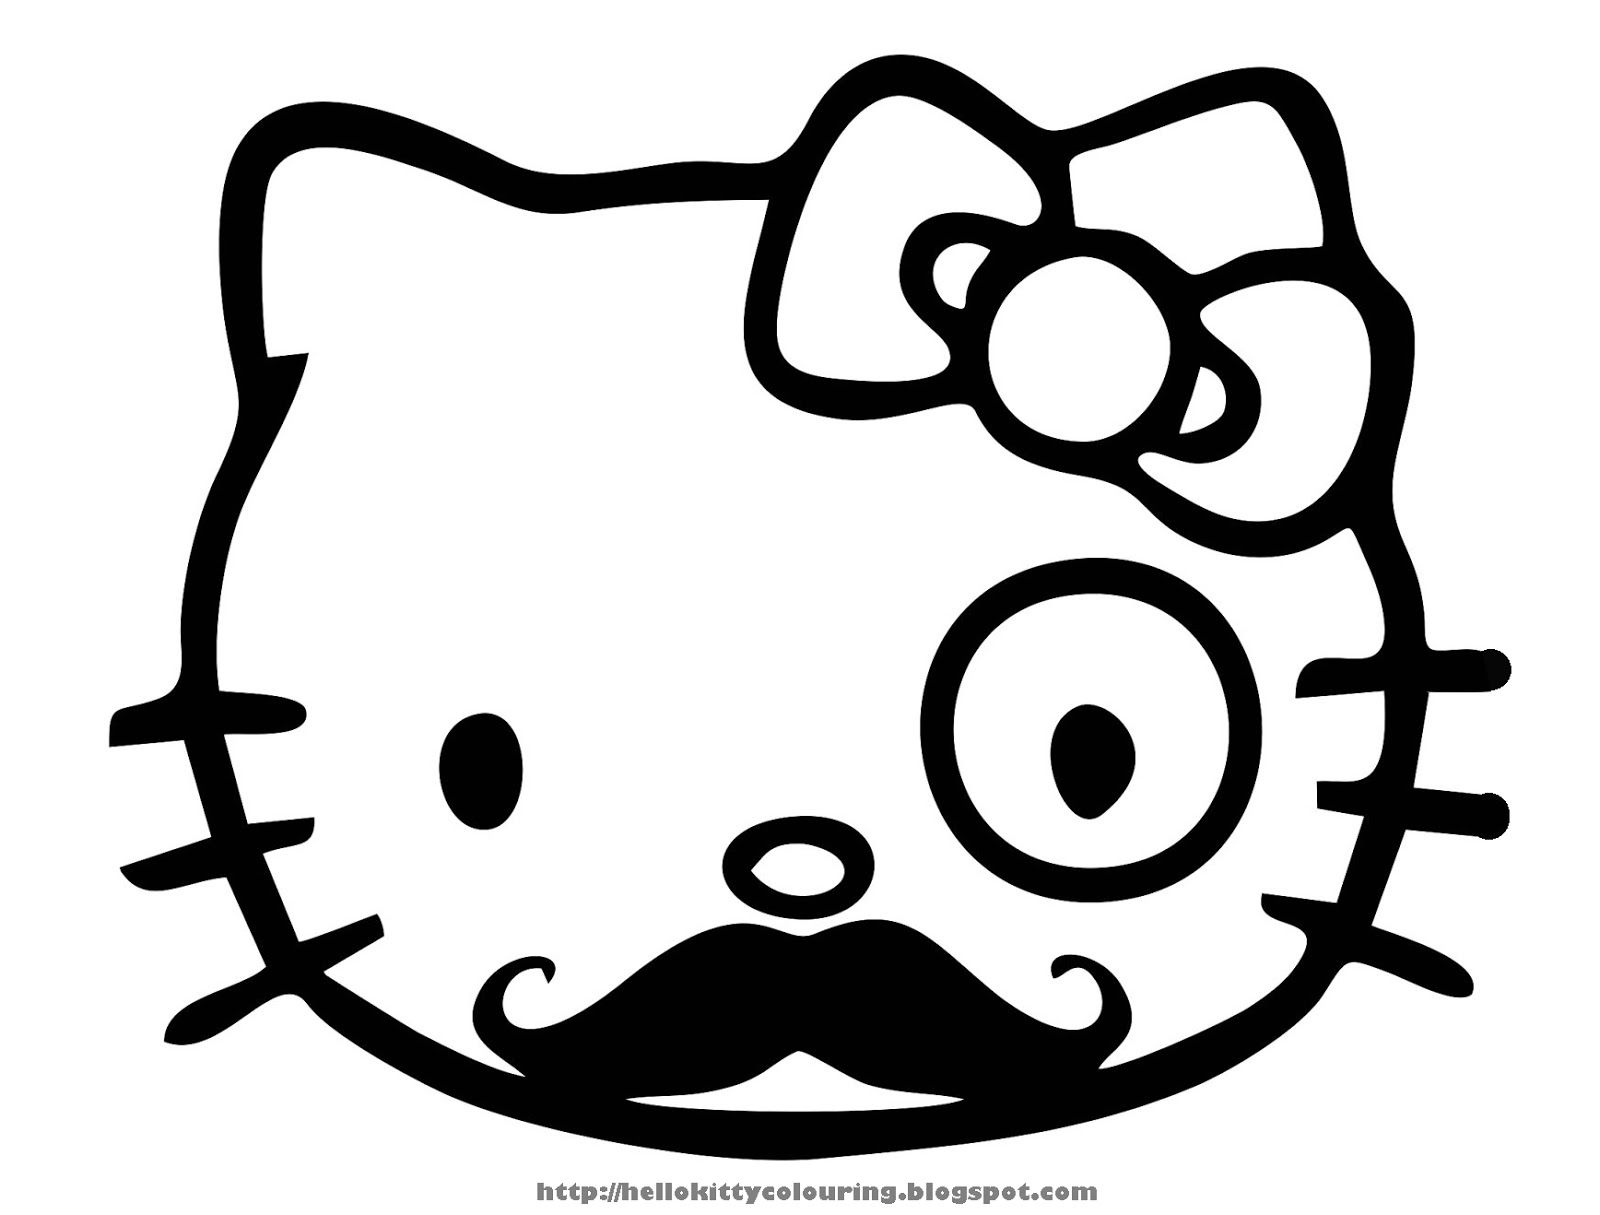 as with most of the other hello kitty coloring pages the sheet is made with